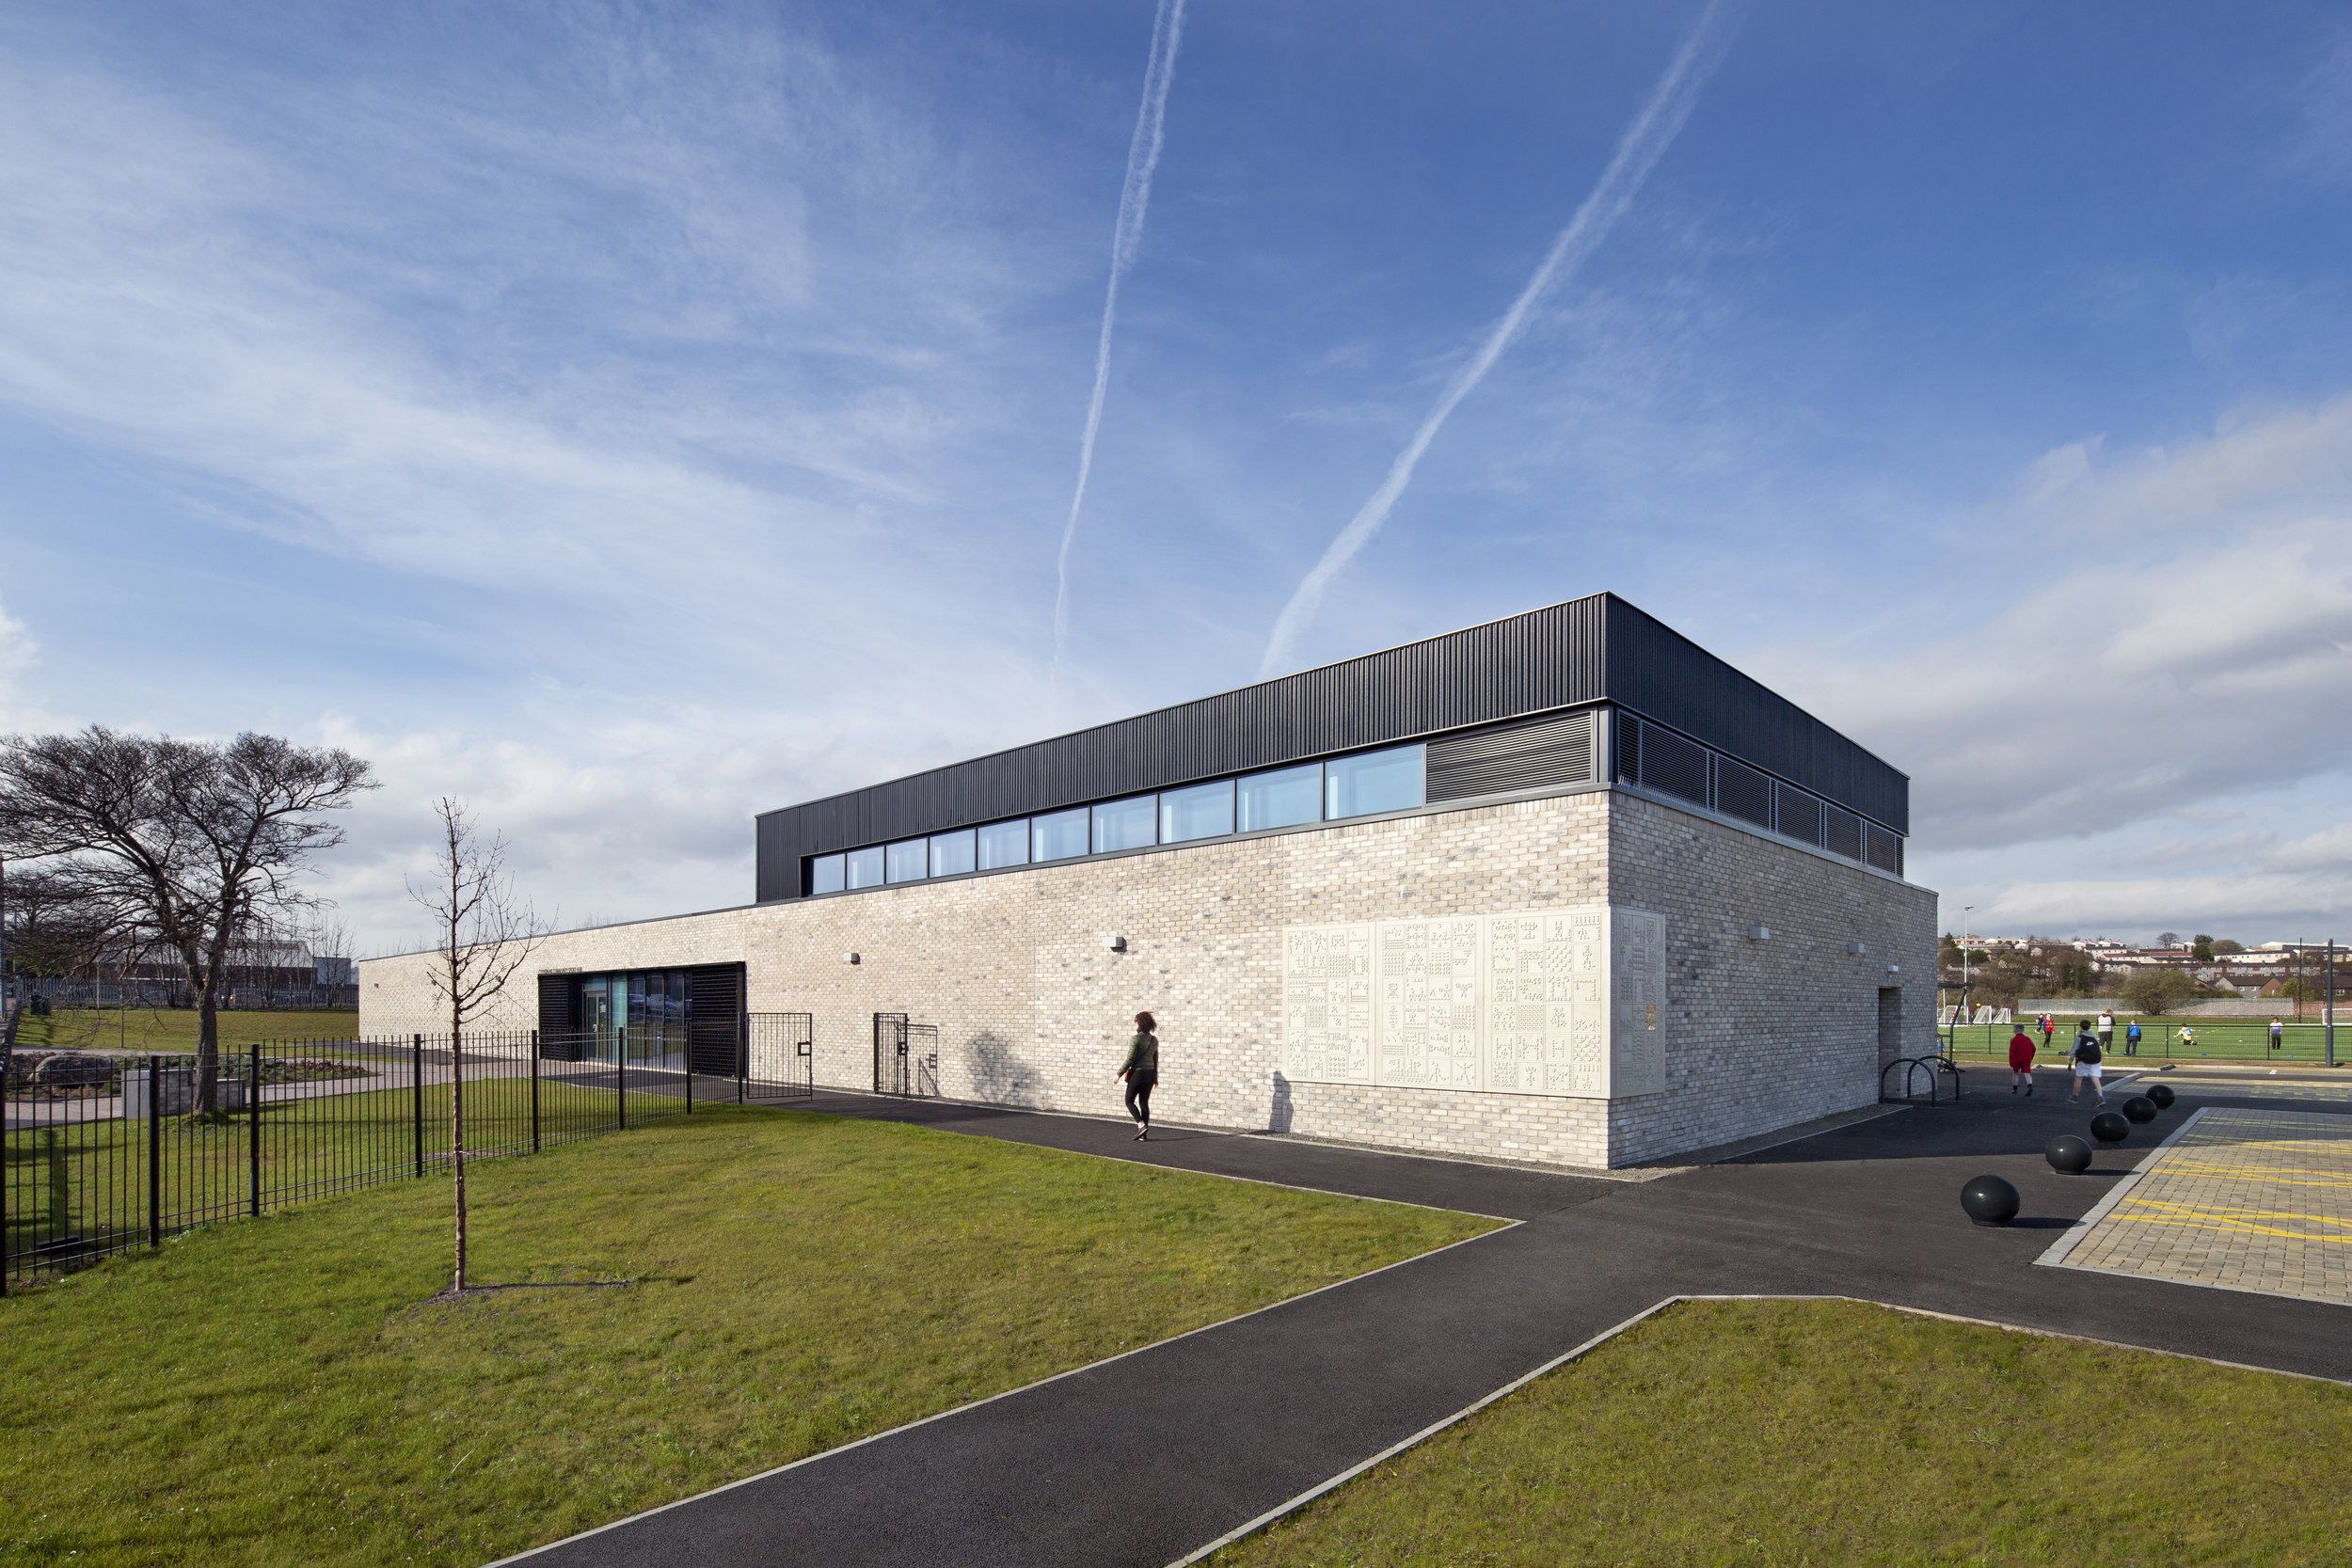 Clydebank Community Sports Hub